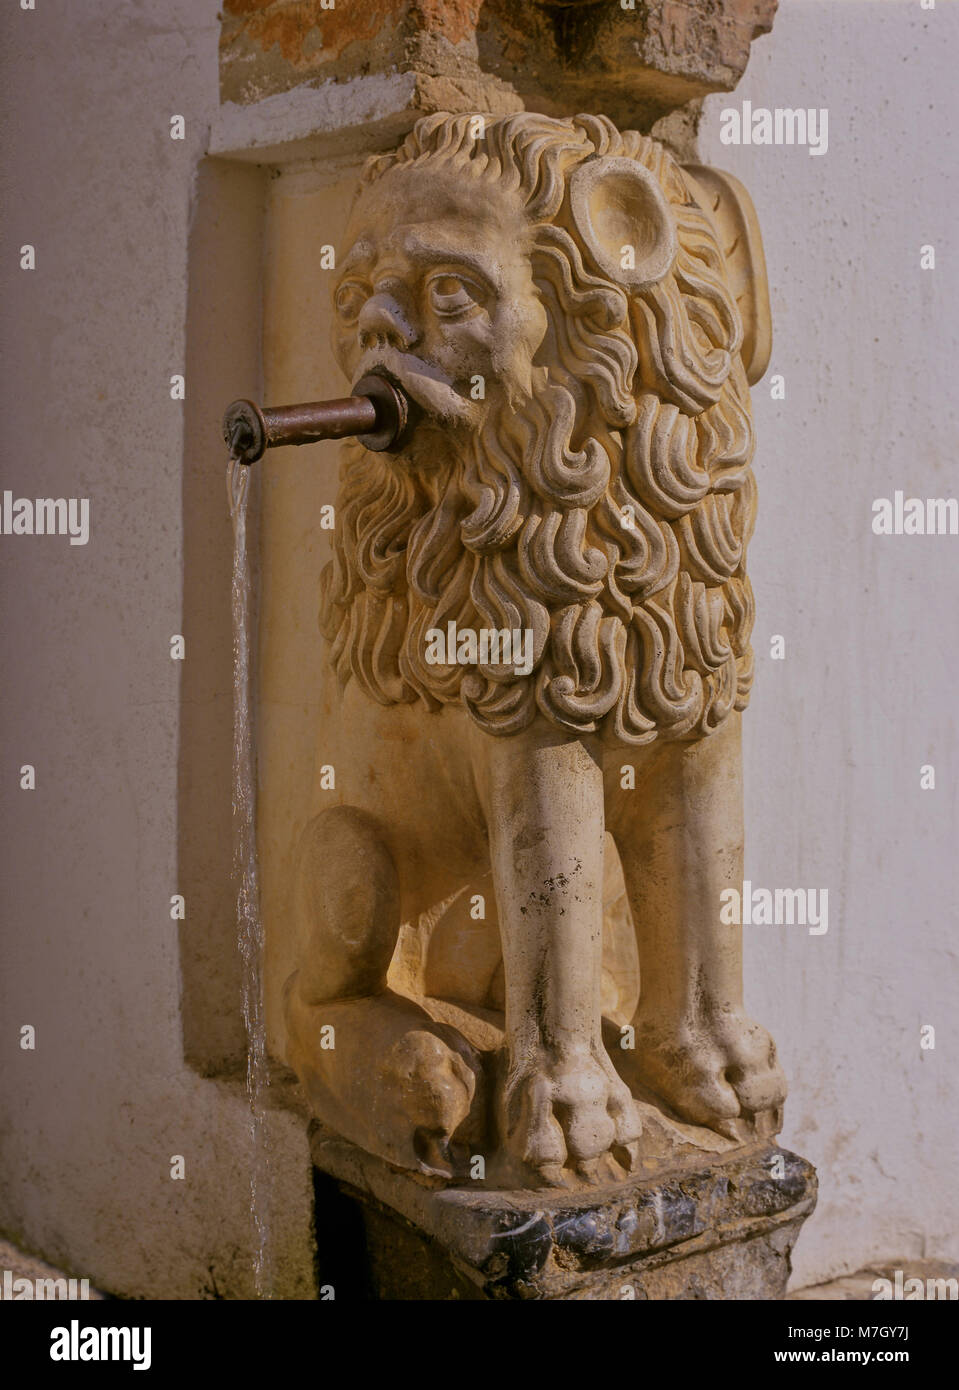 Fountain of the Written Stone (year 1724), Cordoba, Region of Andalusia, Spain, Europe - Stock Image